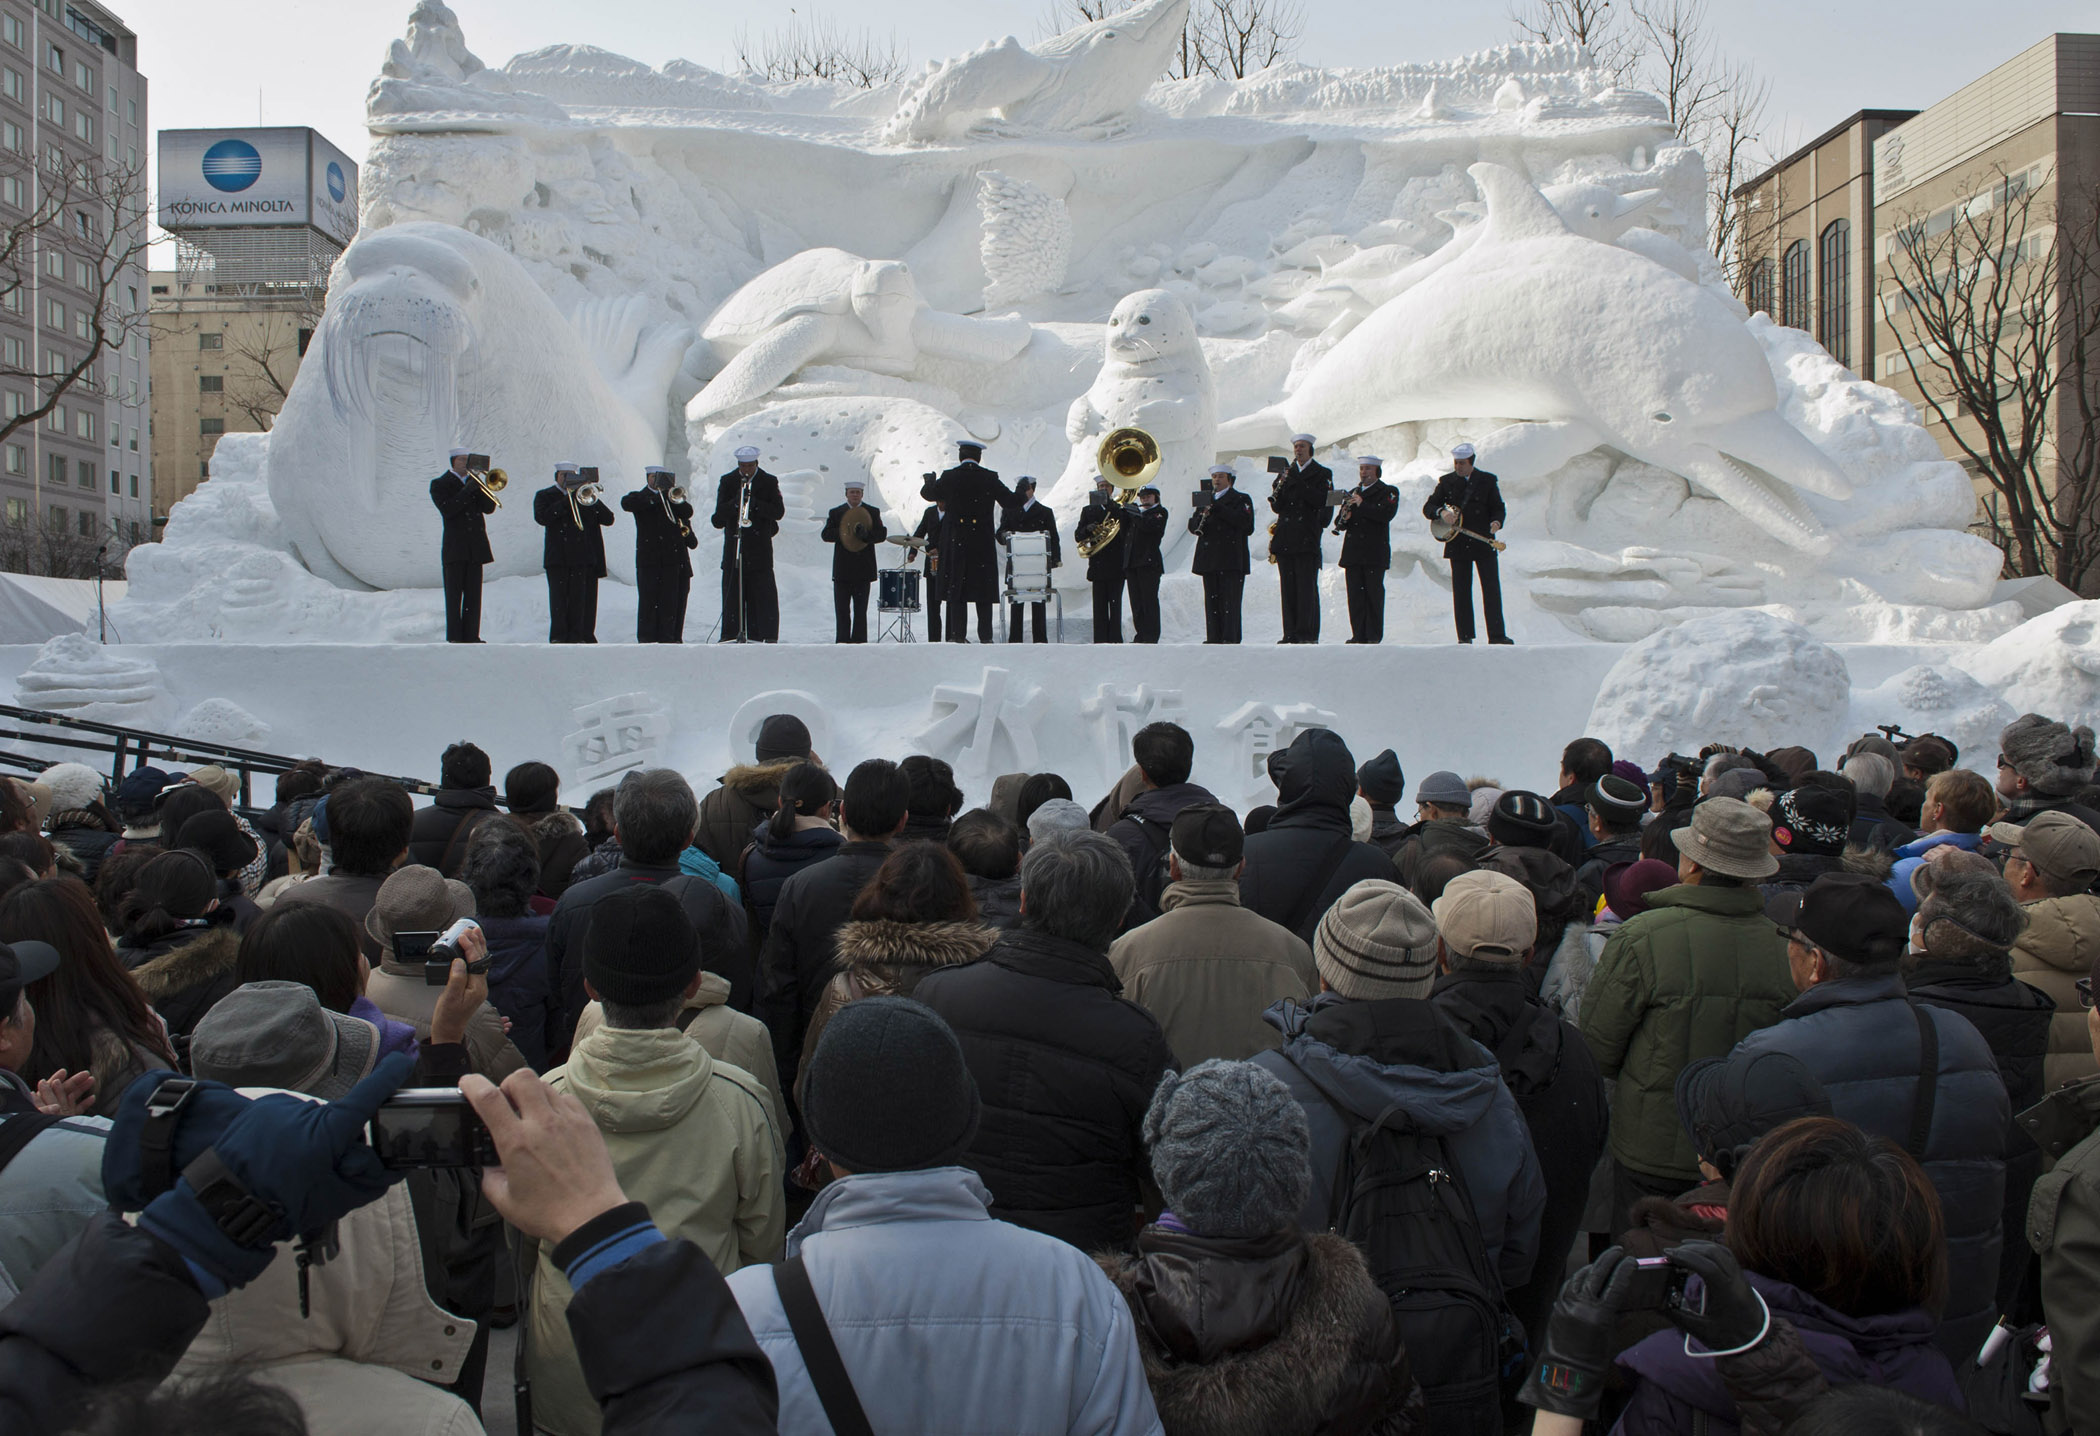 SAPPORO, Japan (Feb. 6, 2012) - U.S. 7th Fleet Band performs at the 63rd Sapporo Snow Festival. The Sapporo Snow Festival, one of Japan's largest winter events, attracts two million people to Sapporo to see hundreds of snow statues and ice sculptures. Sailors from the U.S. 7th Fleet flagship USS Blue Ridge (LCC 19), embarked U.S. 7th Fleet staff and Marines from Fleet Antiterrorism Security Team-Pacific (FAST-PAC) are in Tomakomai, Japan for a port visit to participate in the 63rd Sapporo Snow Festival. (U.S. Navy photo by Mass Communication Specialist 2nd Class Kenneth R. Hendrix)